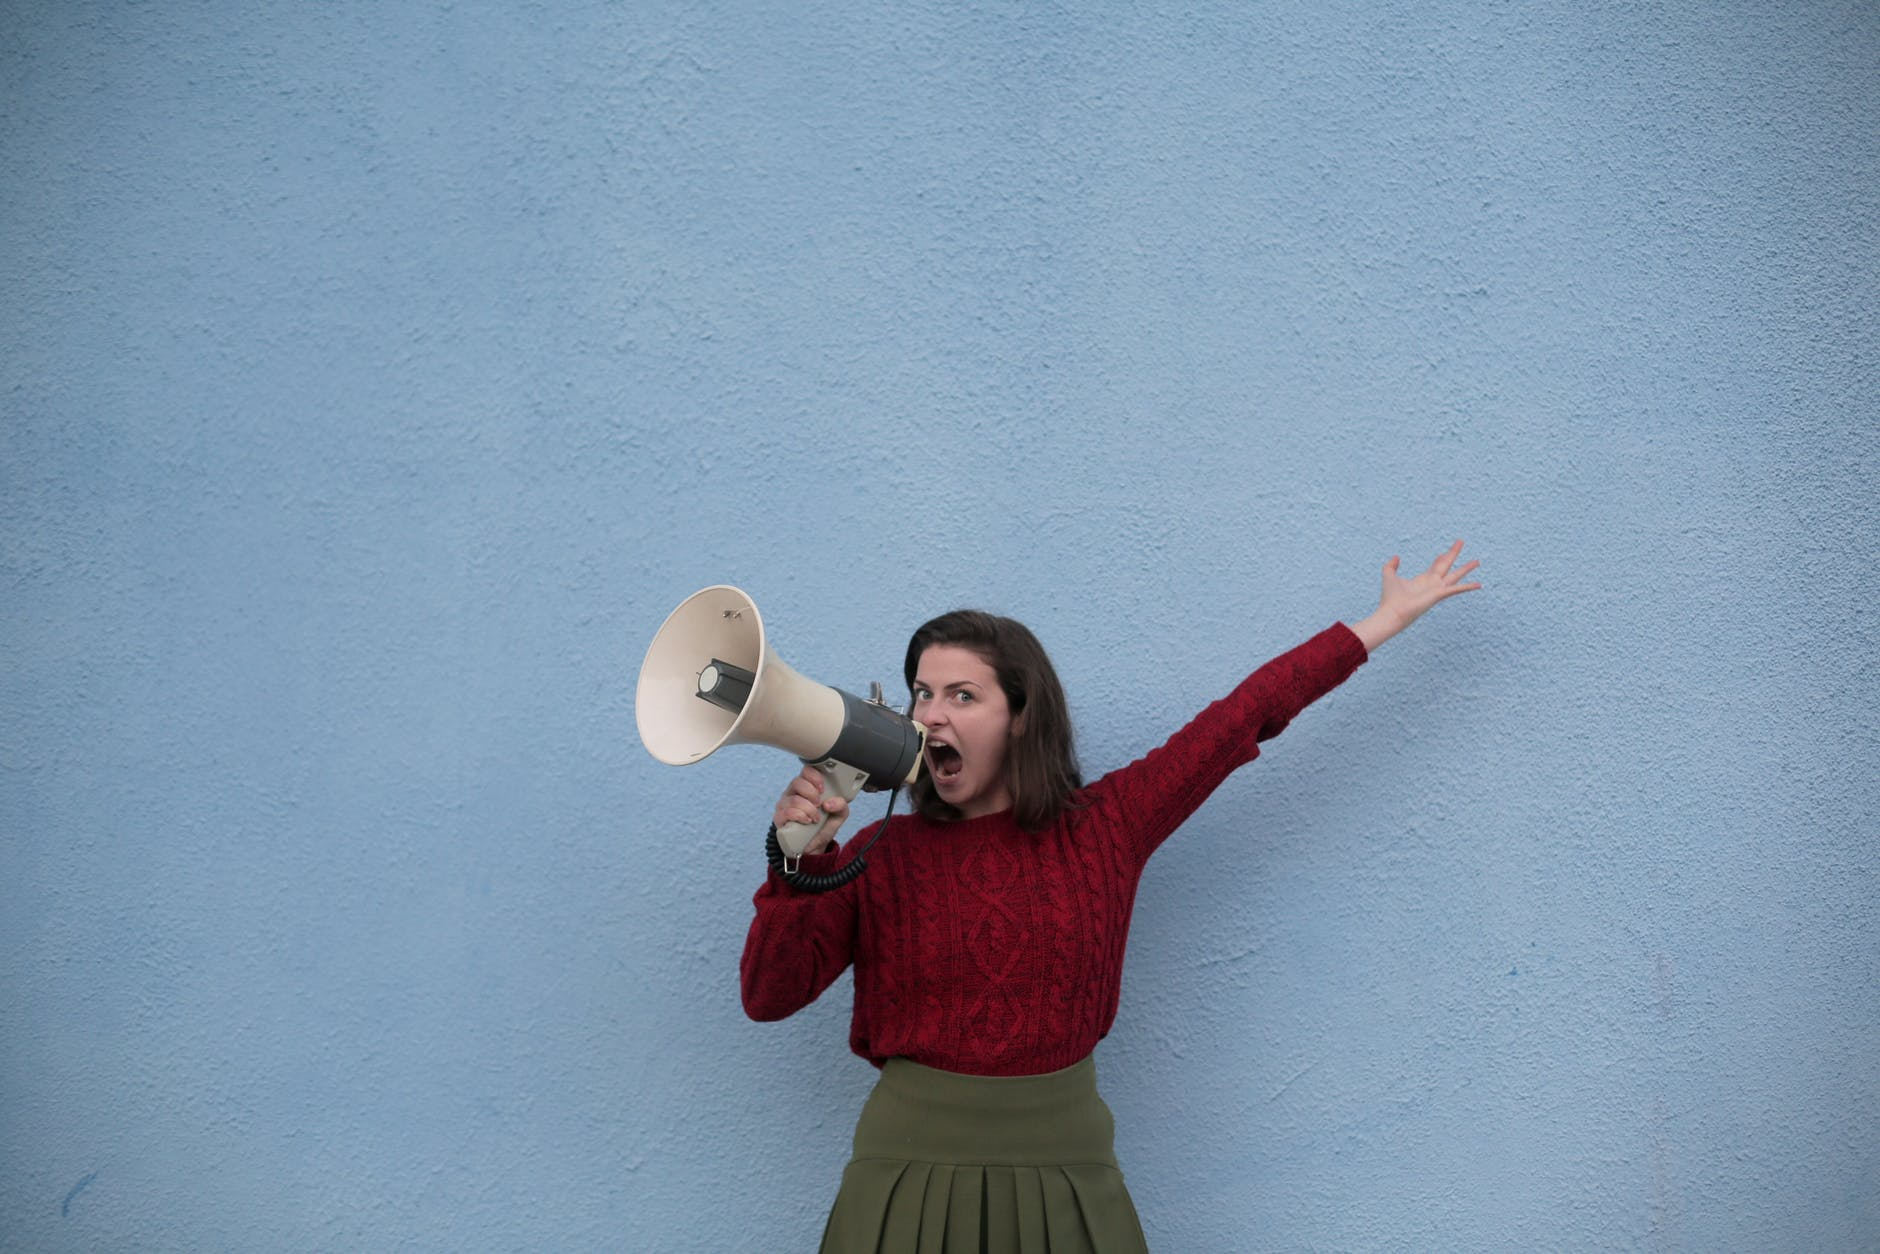 A woman speaks into a megaphone